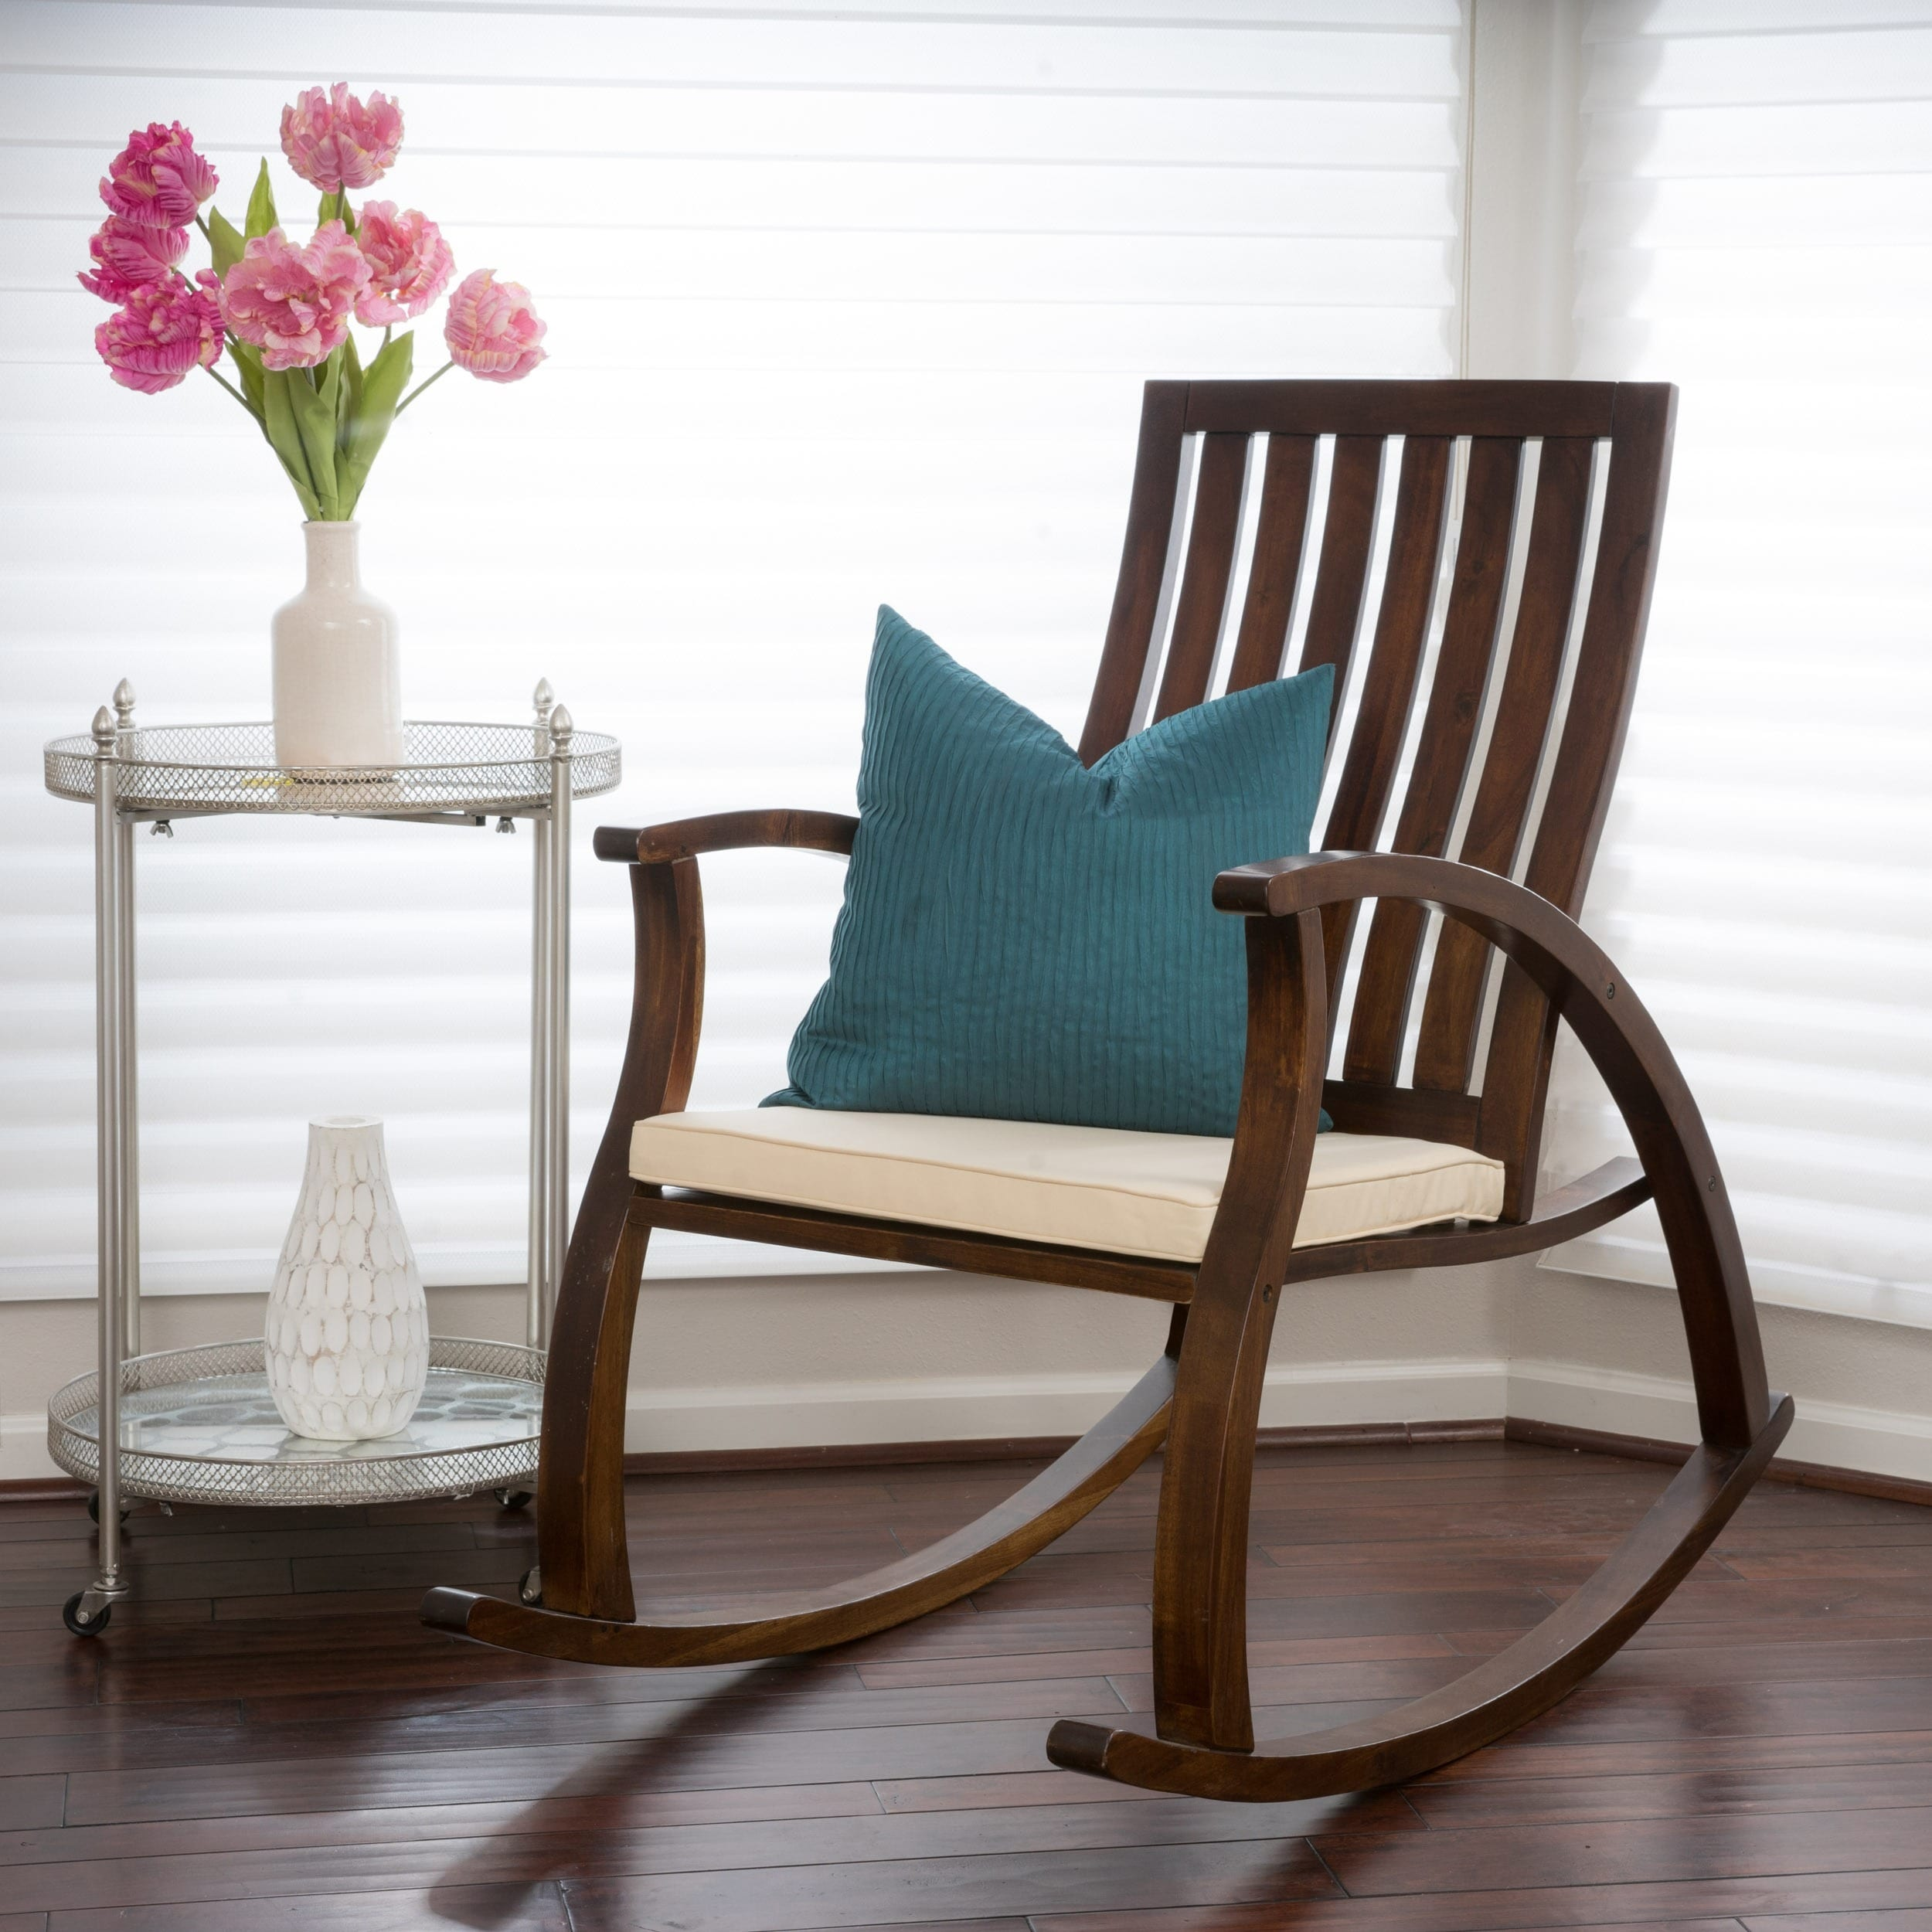 Abraham Brown Mahogany Wood Rocking Chair w/ Cushion by C...